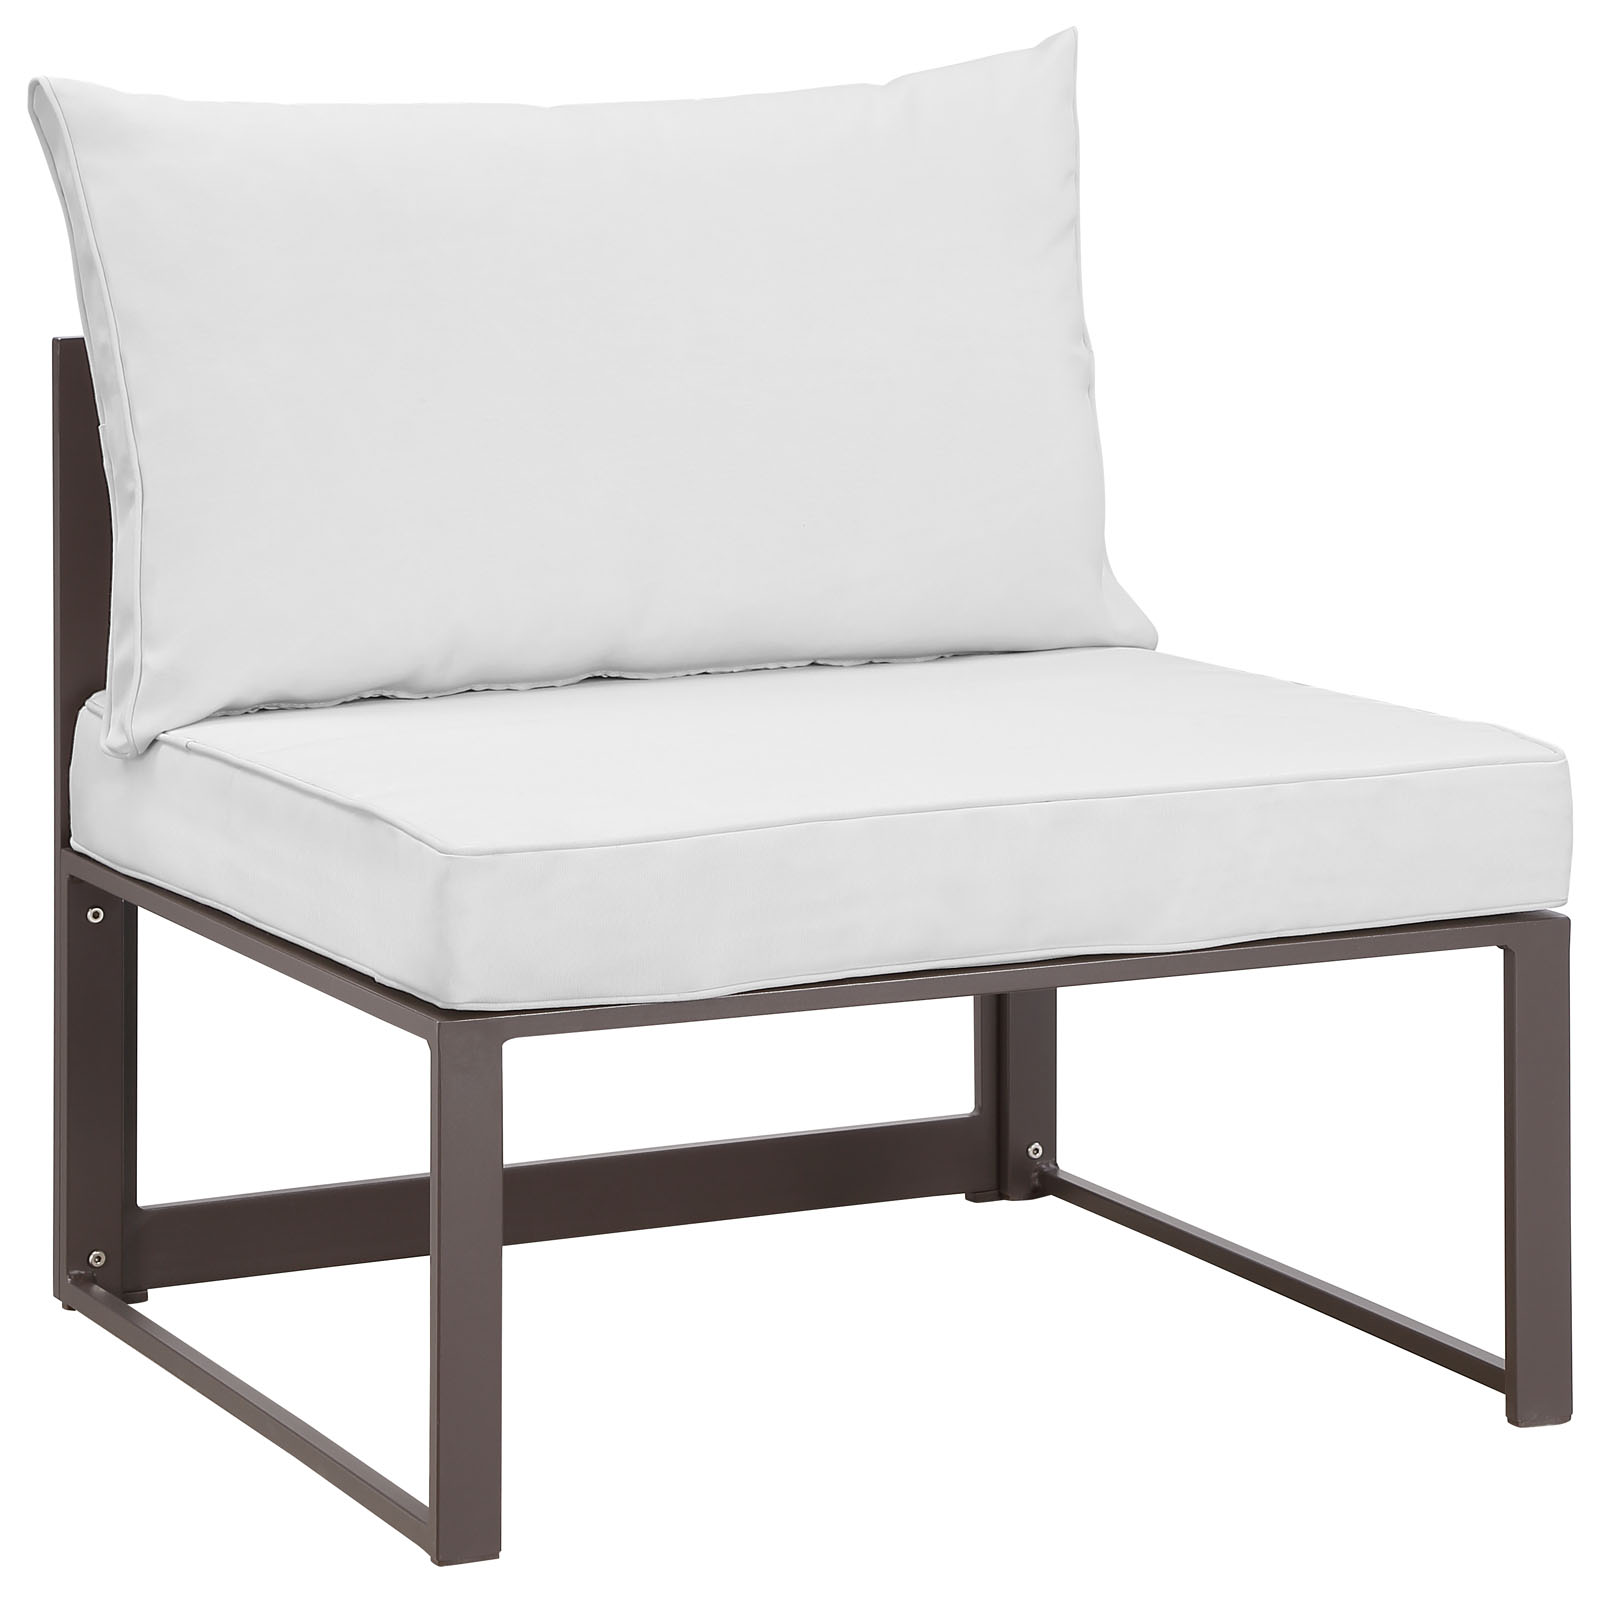 Corinthian 5300 Traditional Styled Sectional Sofa With: Fortuna 8 Piece Outdoor Patio Sectional Sofa Set